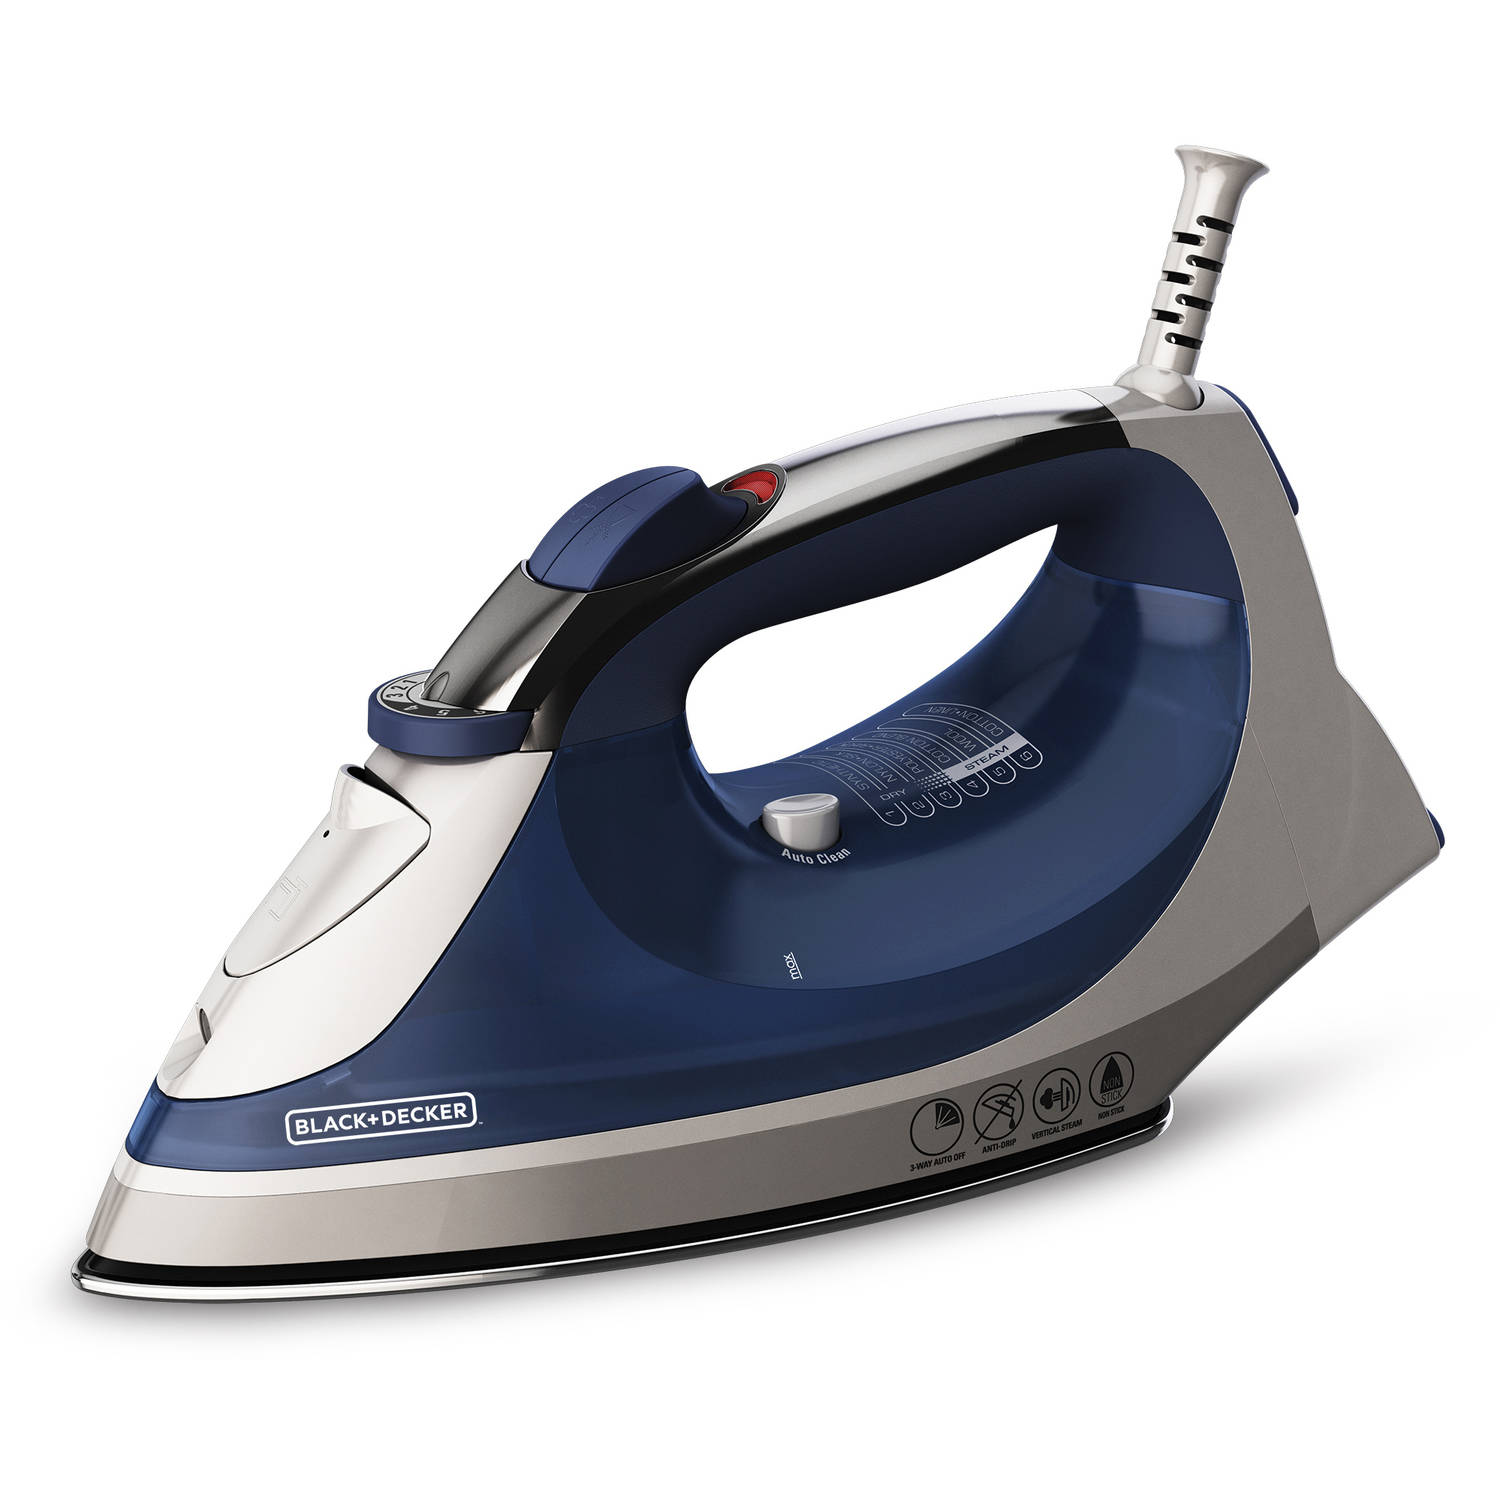 BLACK+DECKER Corded Xpress Steam Iron, Blue, IR08X-2 by Generic